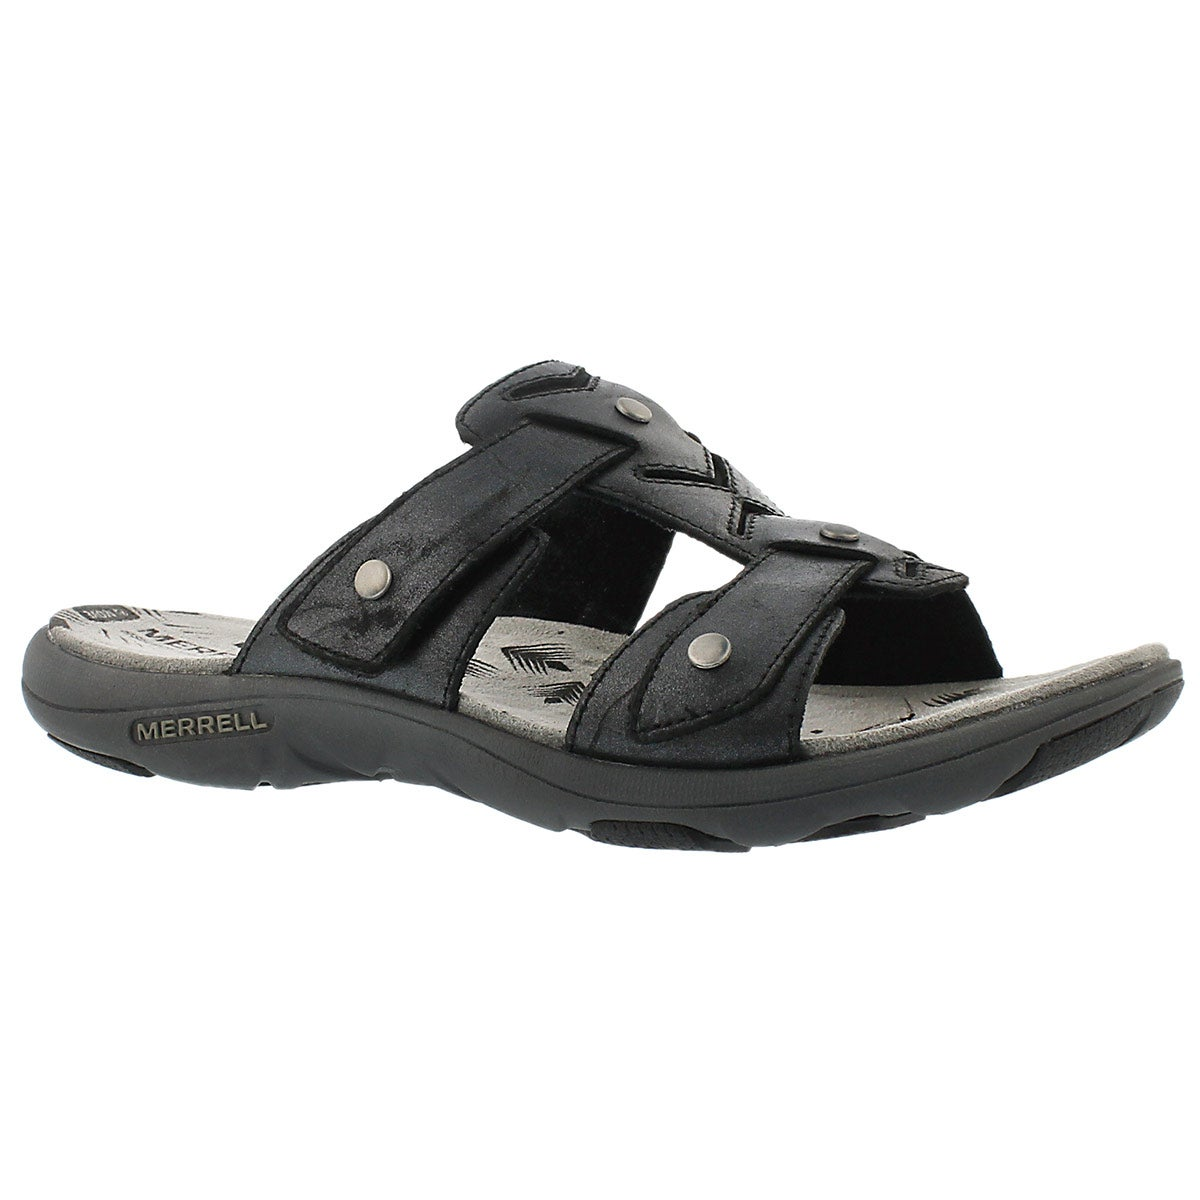 Women's ADHERA SLIDE black casual slide sandals